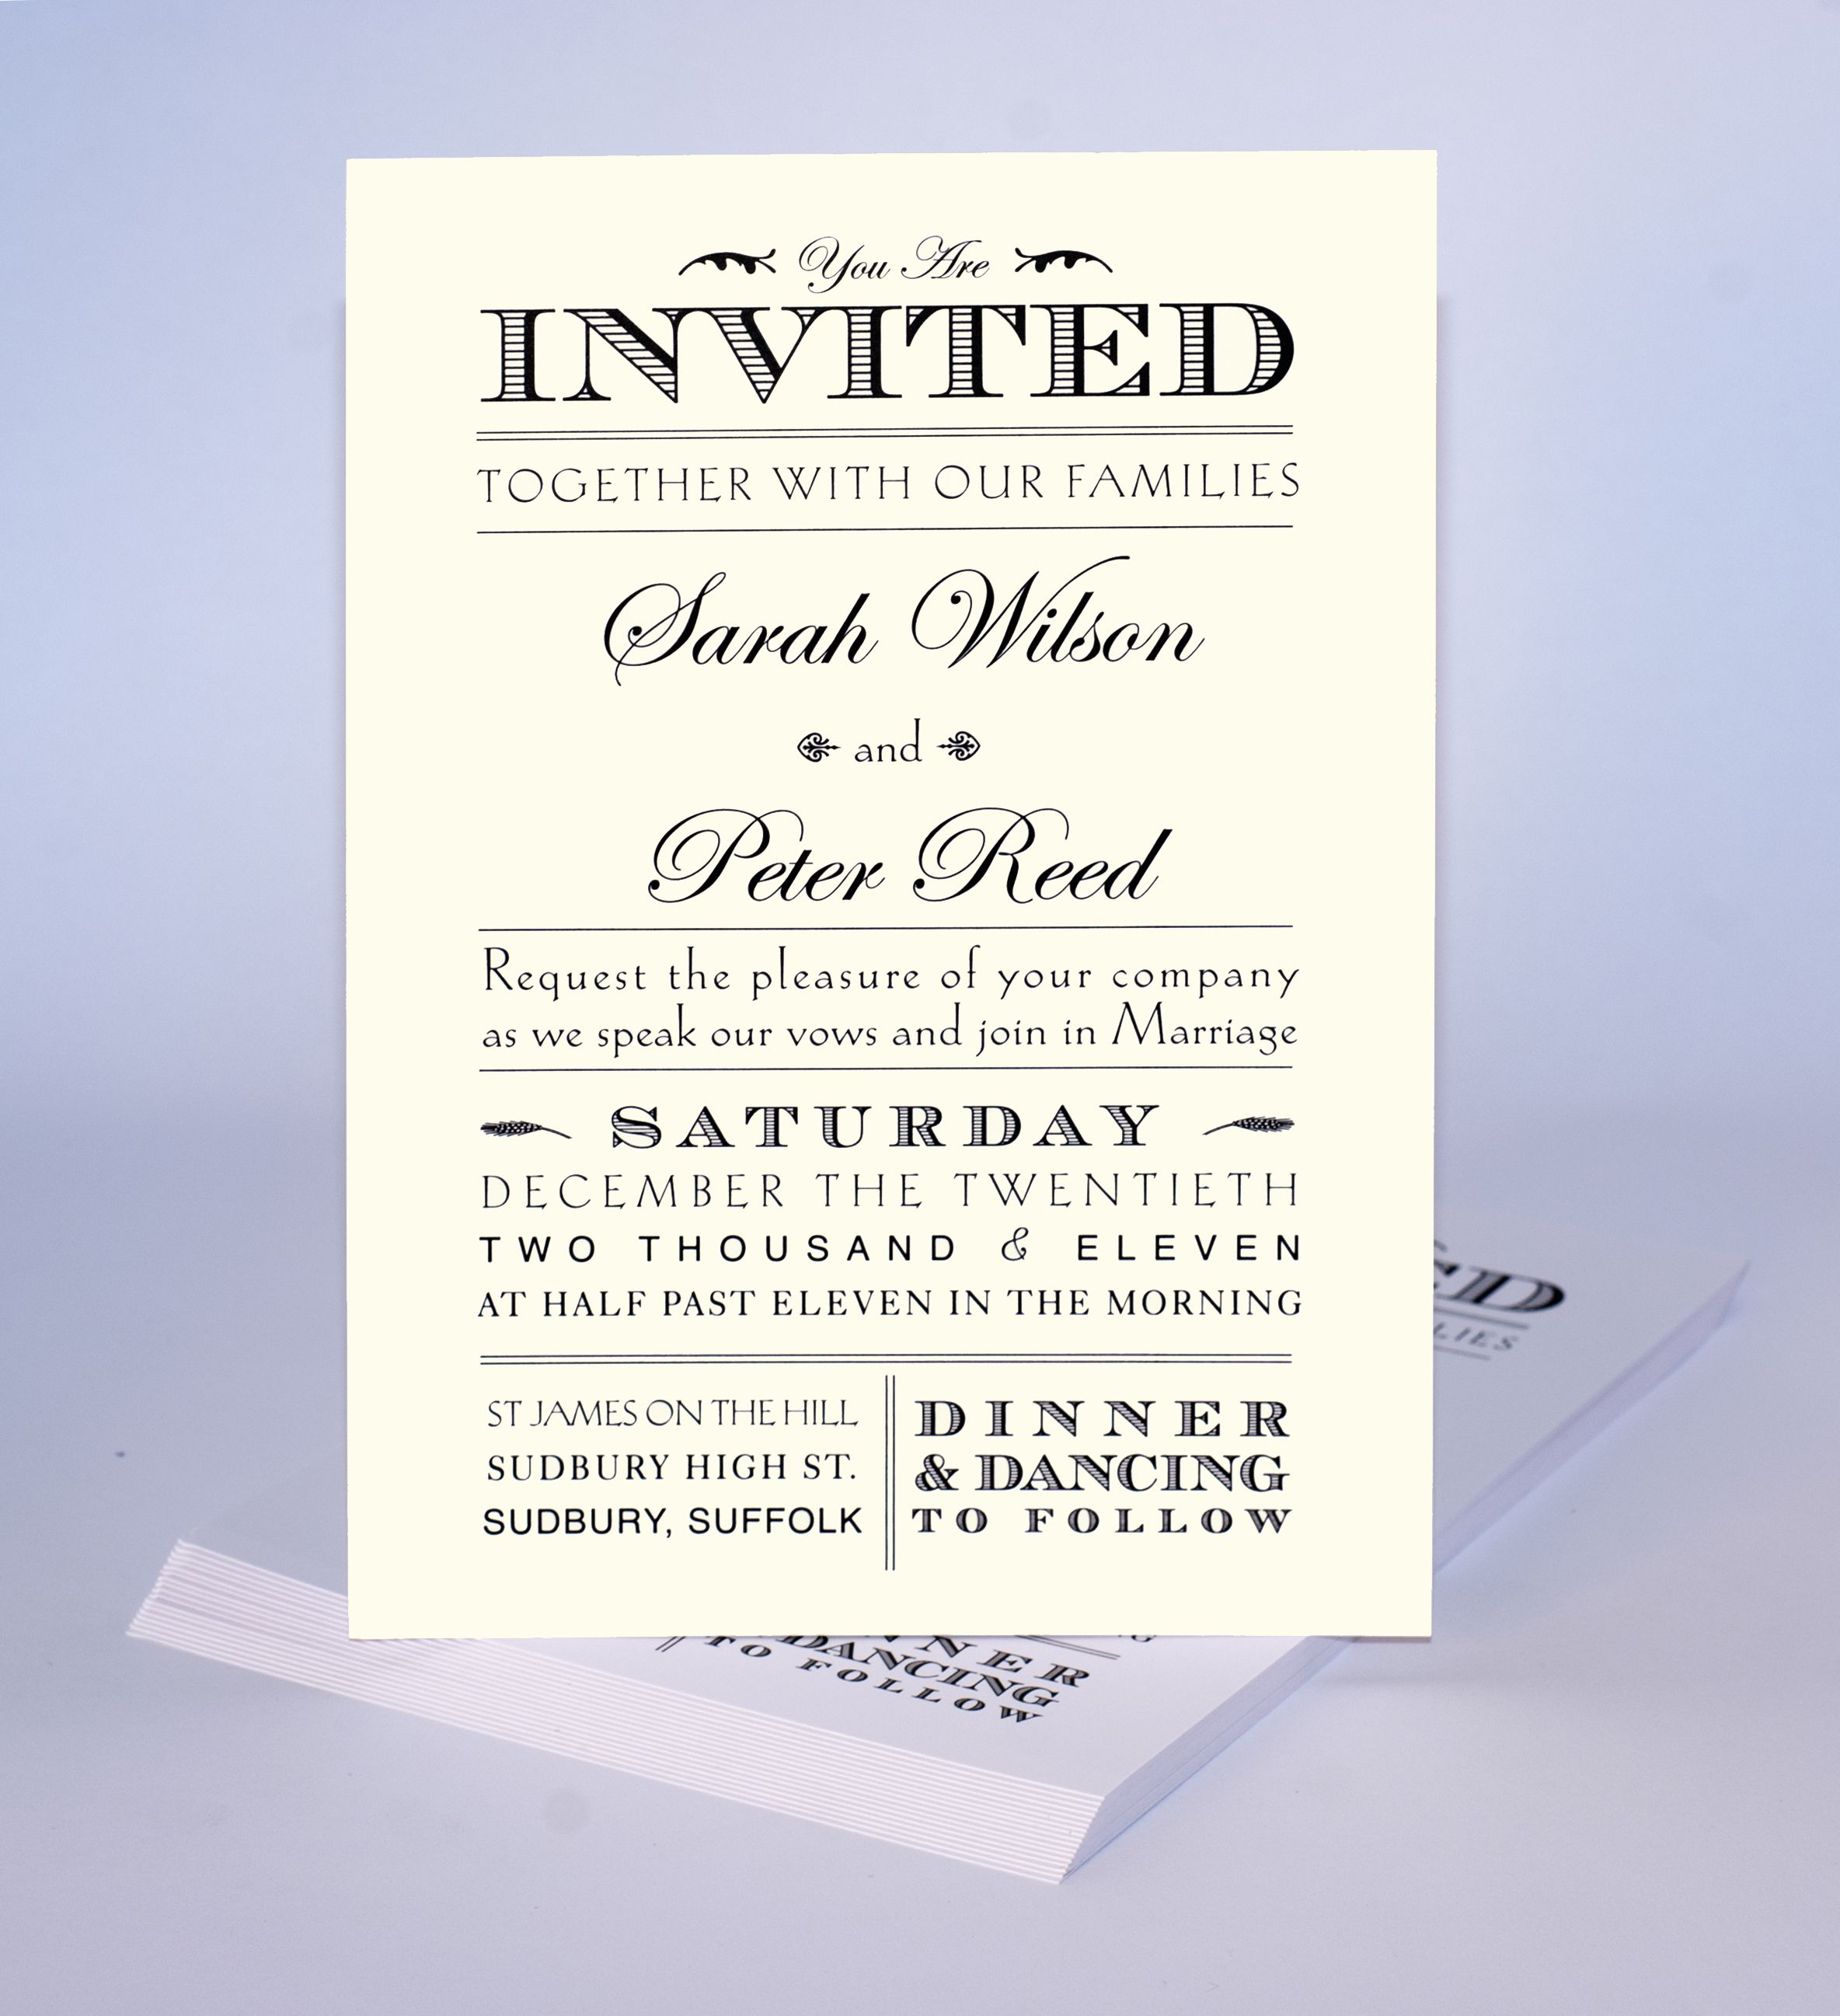 wedding ideas wedding invite samples for public sample wedding wedding ideas wedding invite samples for public sample wedding invitations formal and informal wedding